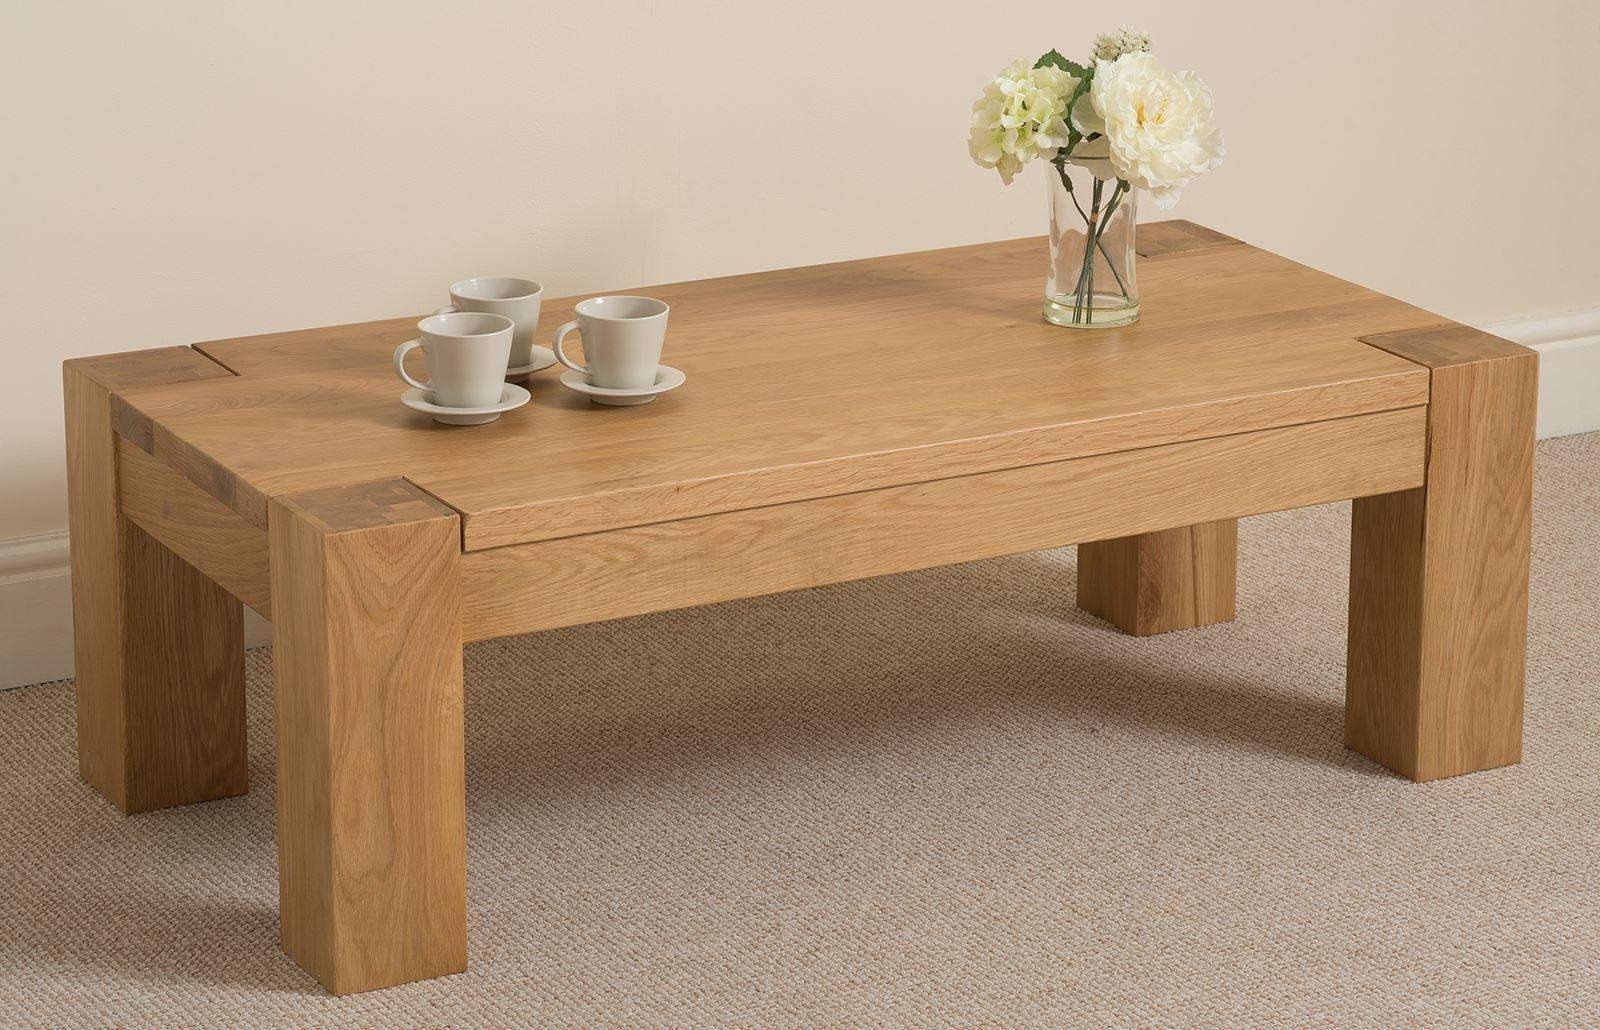 Recent Solid Oak Beam Coffee Table Pertaining To Coffee Table : Chunky 4 Leg Coffee Table With Shelf Rustic Oak In (View 10 of 20)